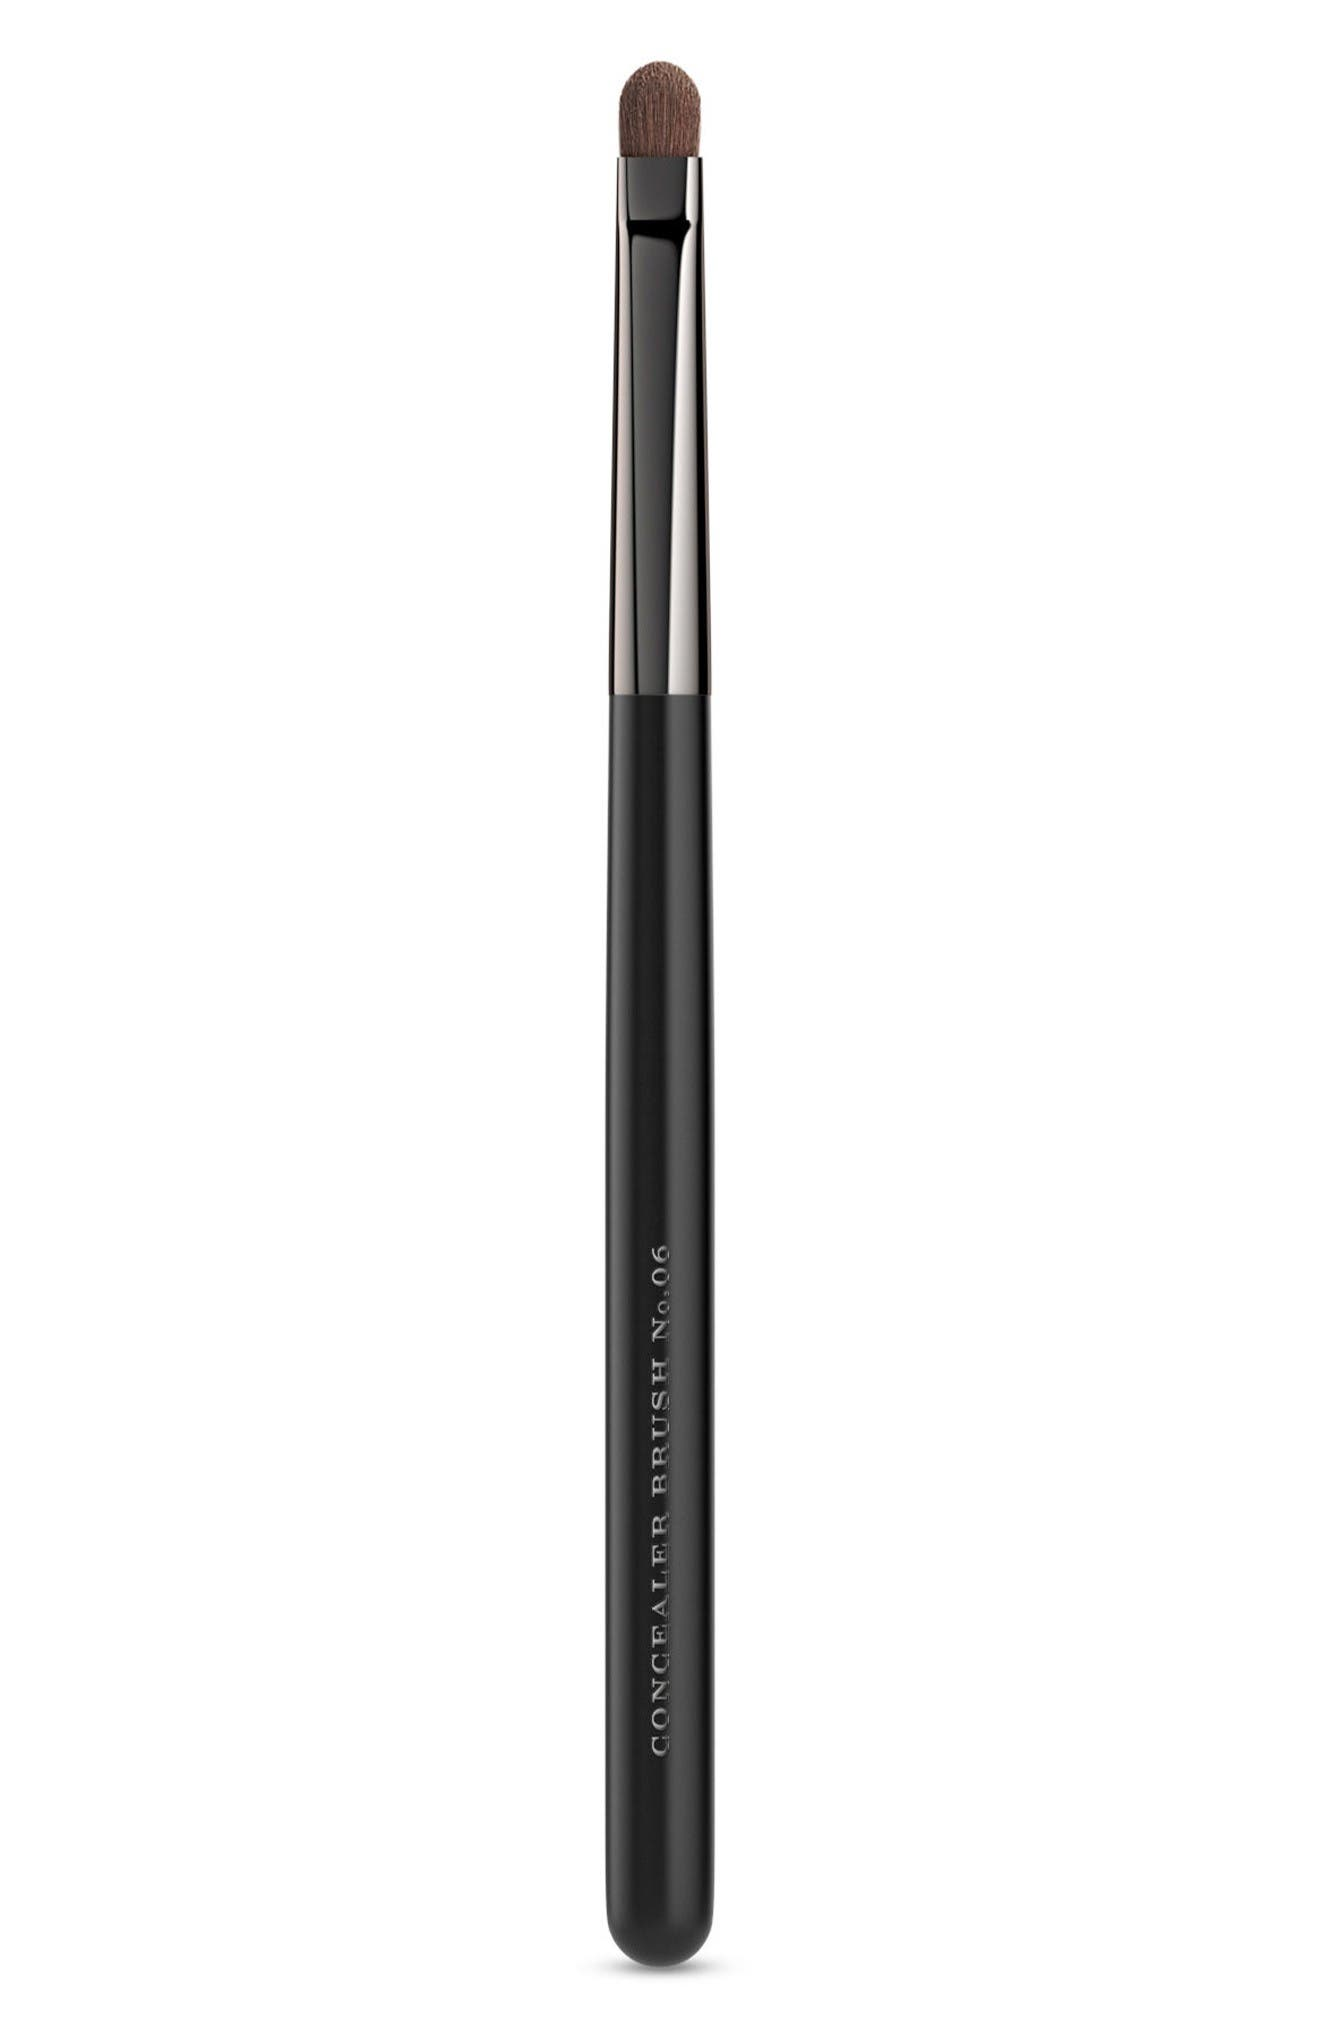 Concealer Brush No. 06,                             Main thumbnail 1, color,                             No Color